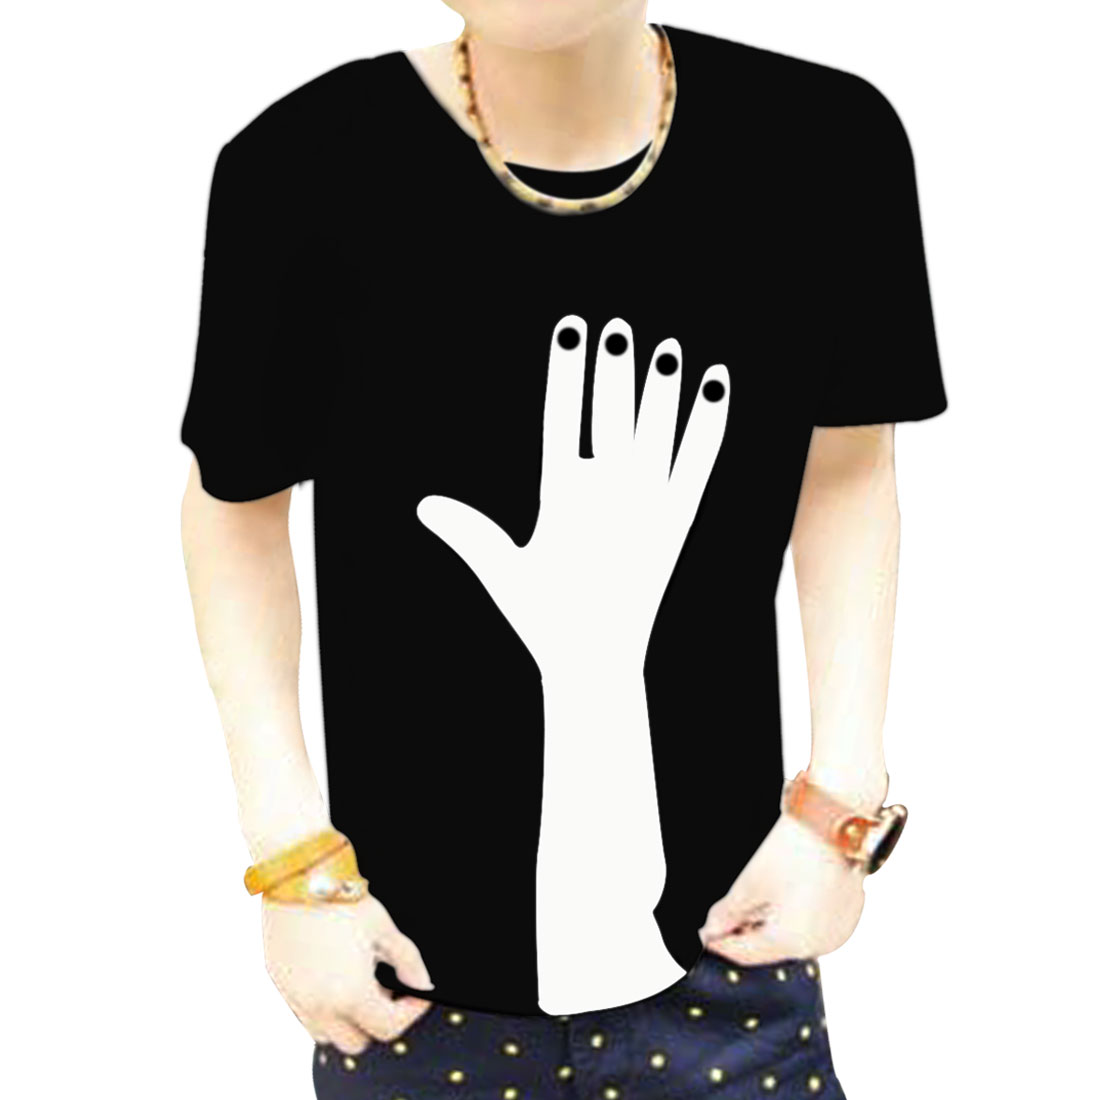 Round Neck Short Sleeves Fashional Leisure T-Shirt Black S for Men